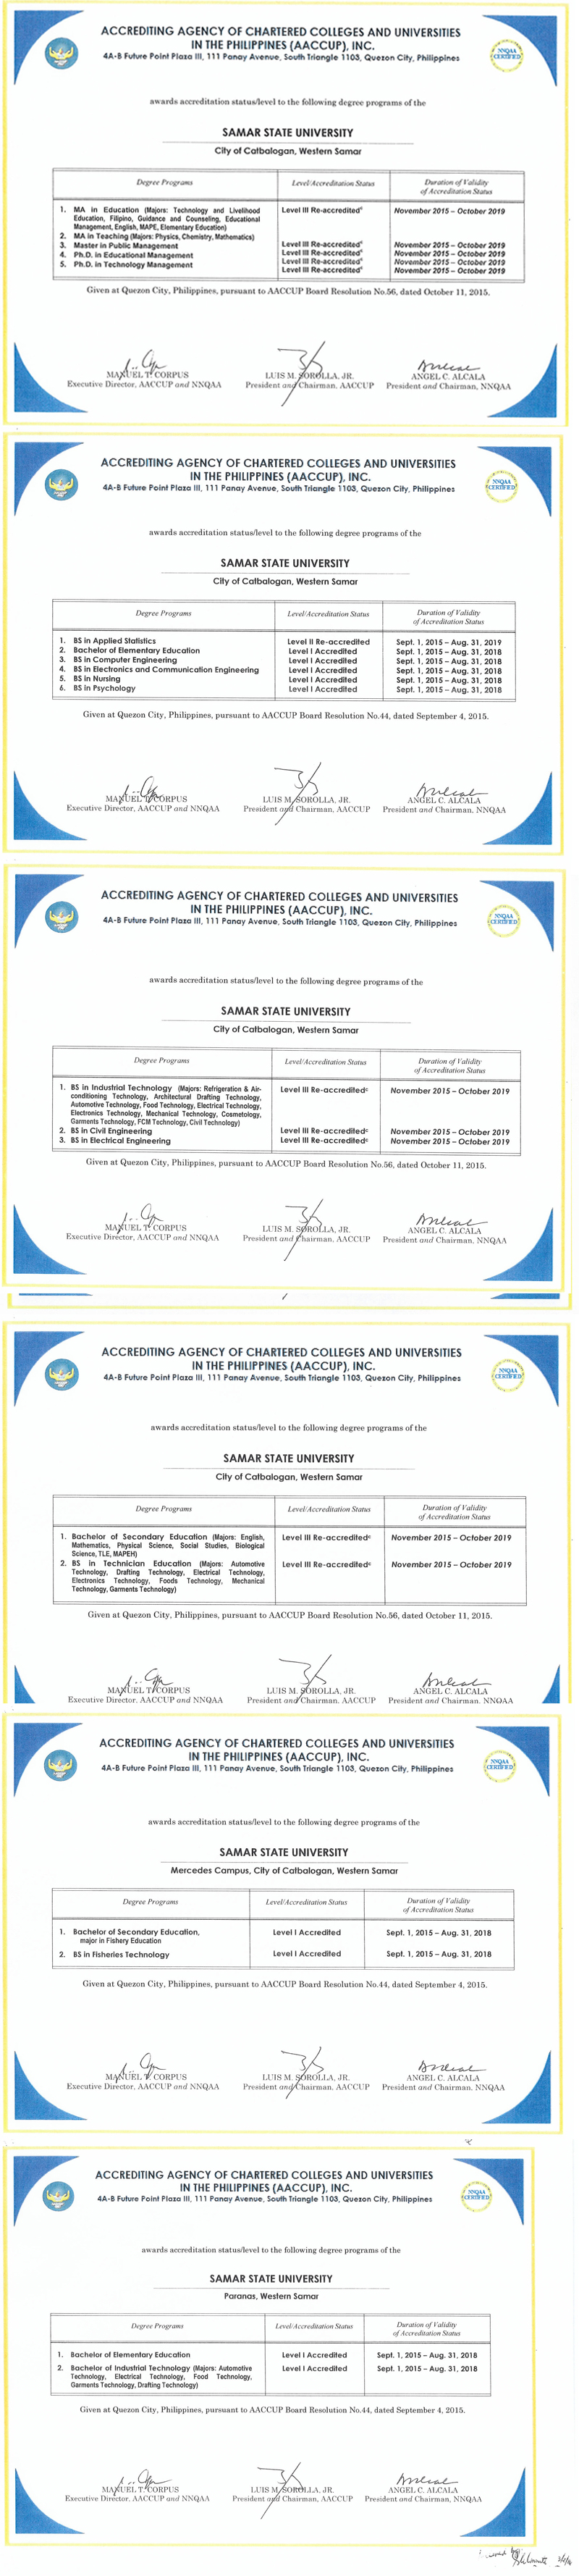 certificates-of-accreditation-levels